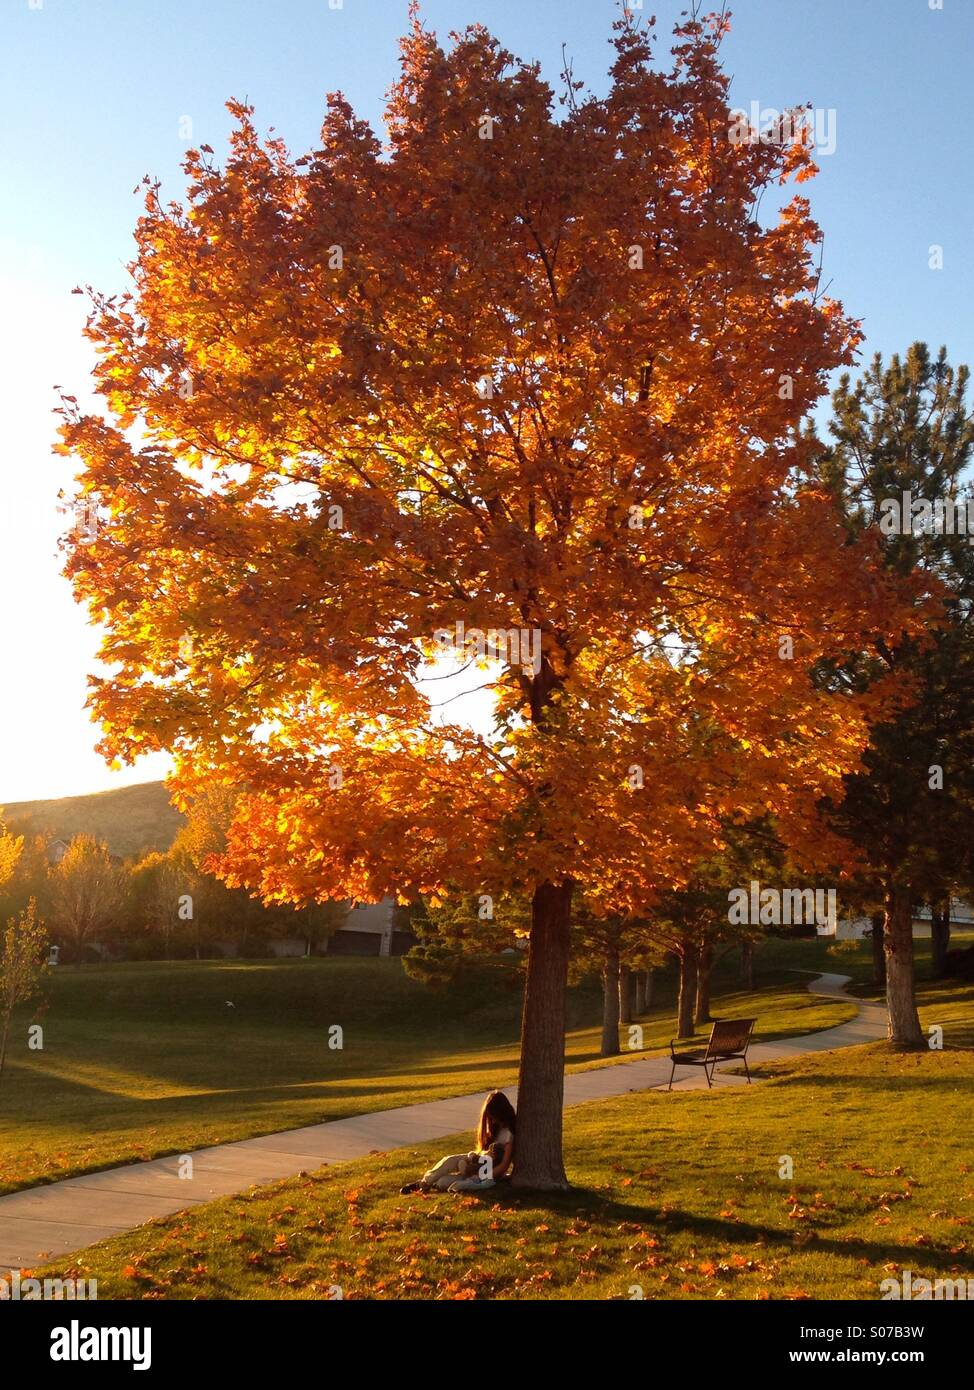 A child sits under a bright orange tree at a park in Salt Lake City, UT. - Stock Image